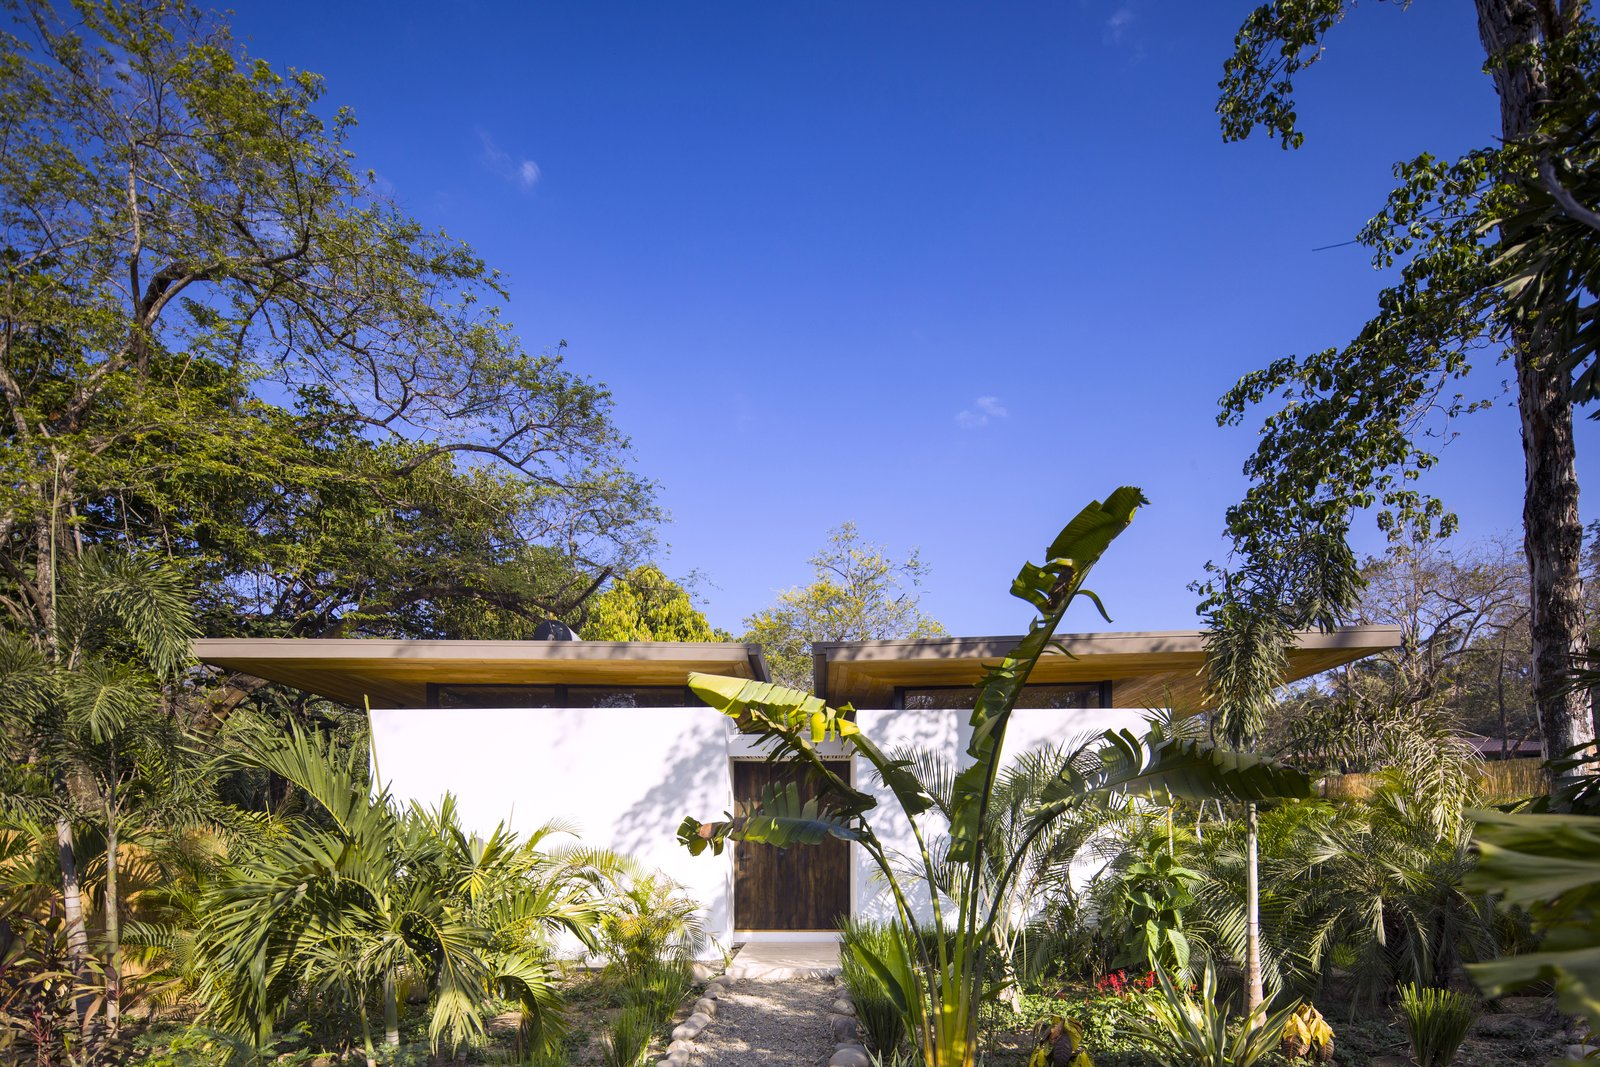 Each villa sits harmoniously within the tropical landscape,  shaded by trees and vegetation.